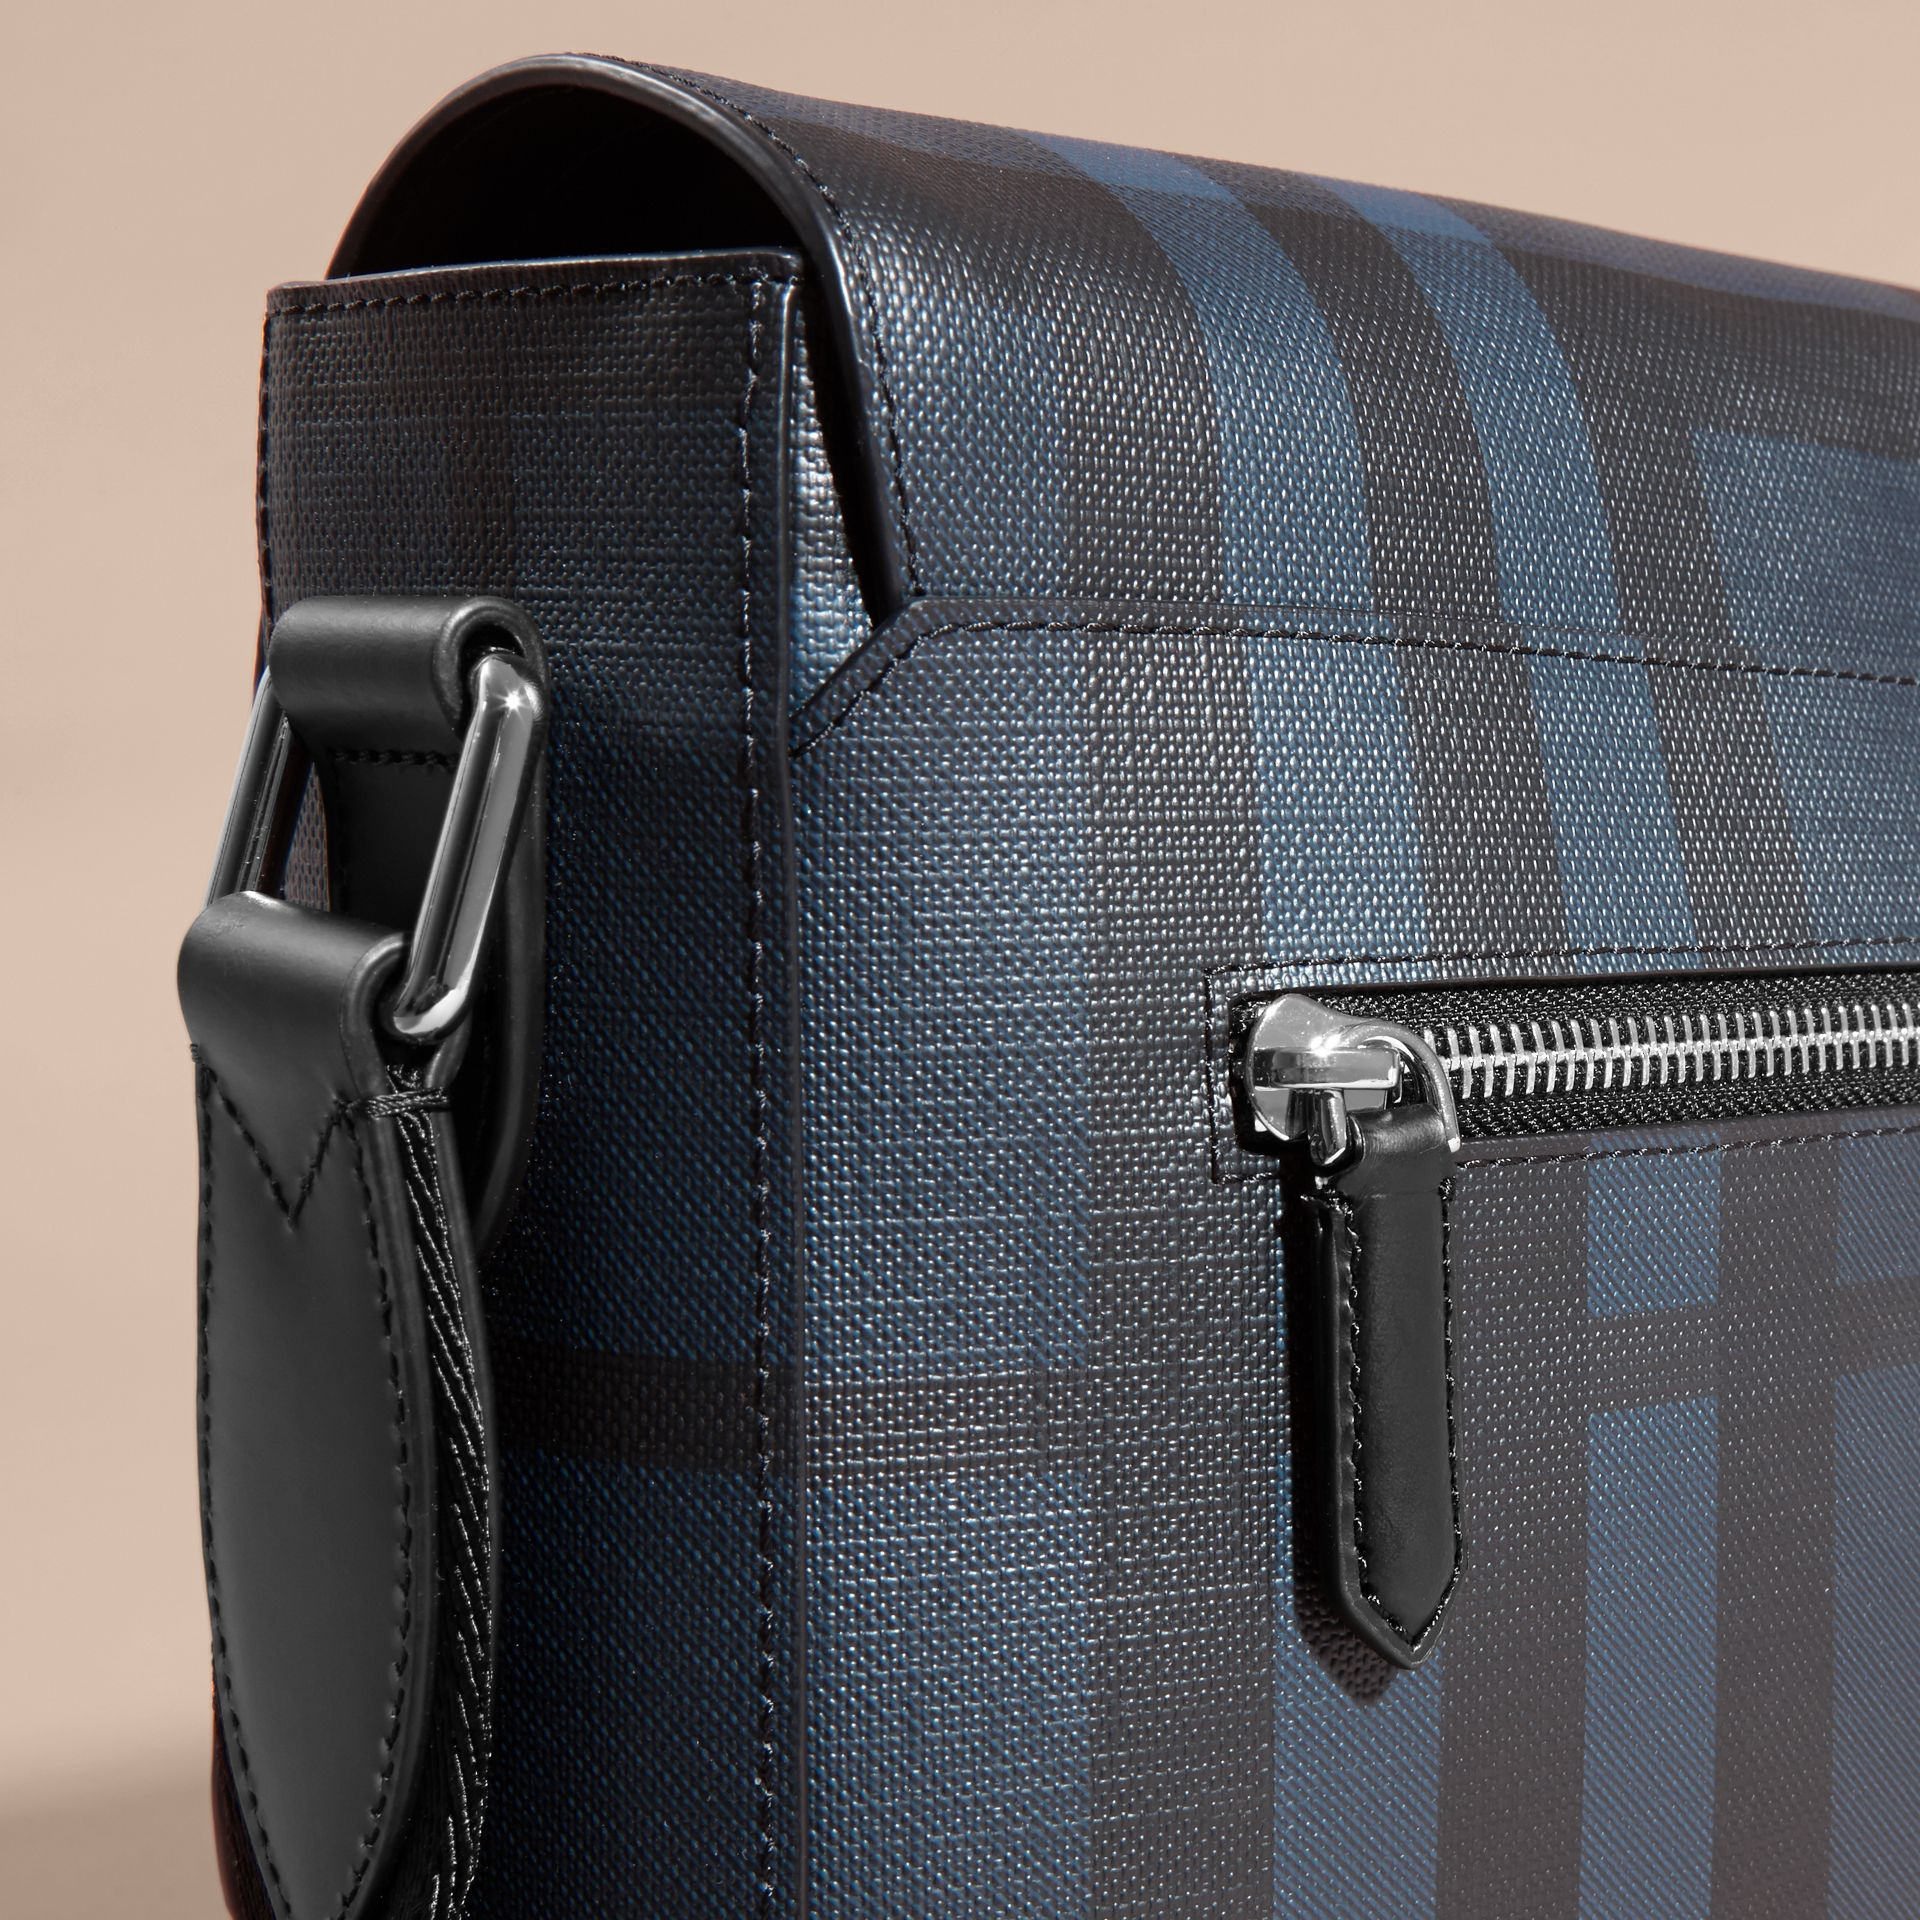 Medium Leather Trim London Check Messenger Bag in Navy/black - Men | Burberry - gallery image 6